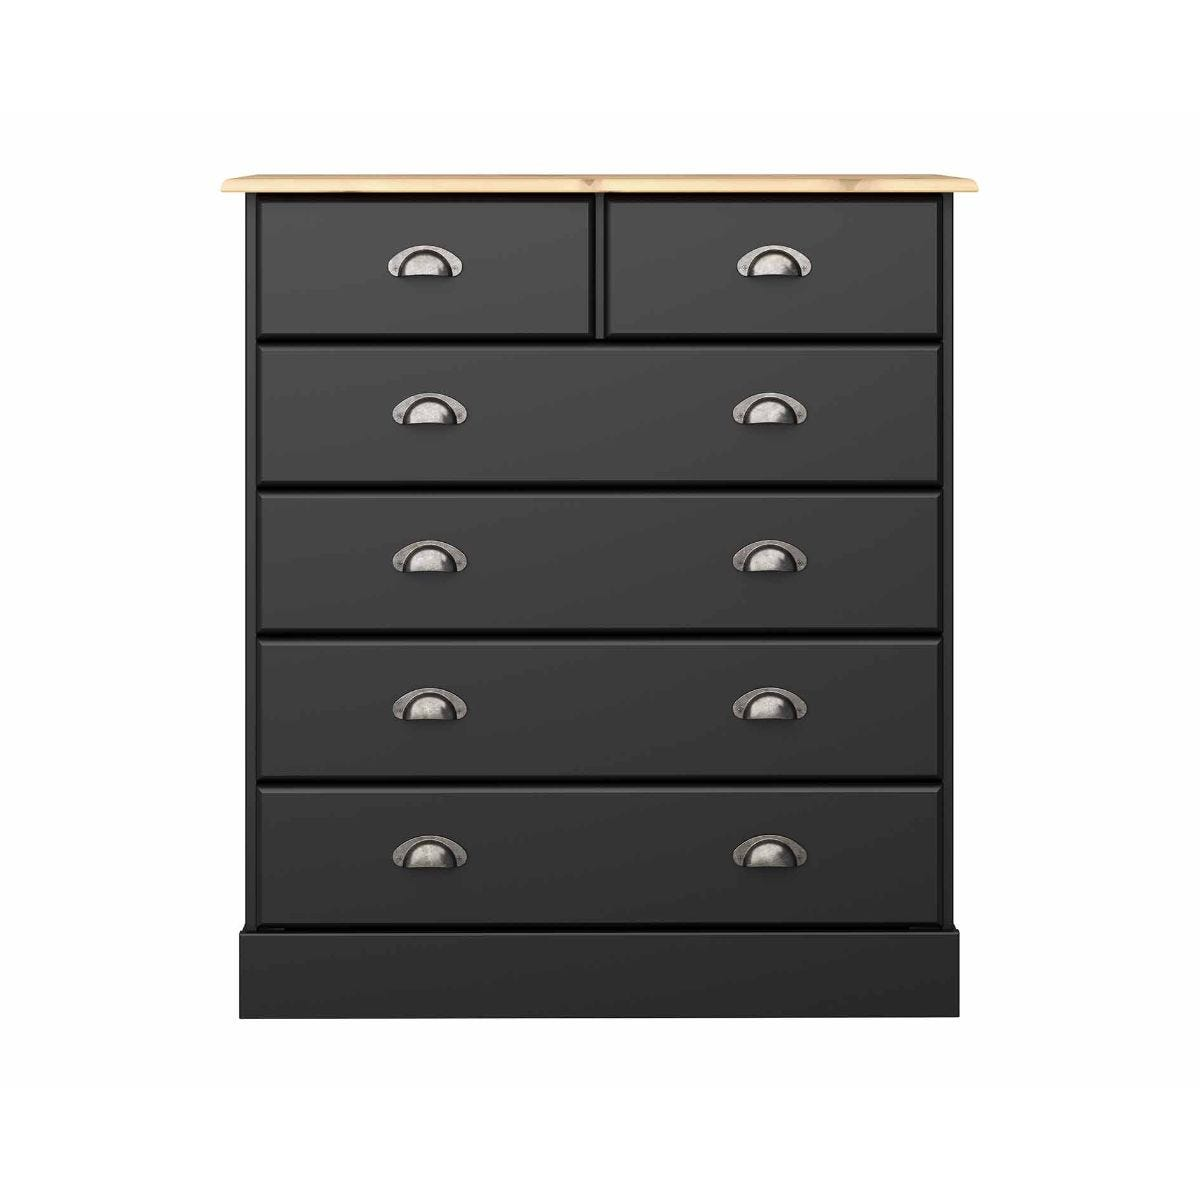 Steens Nola 2 Over 4 Chest of Drawers, Black